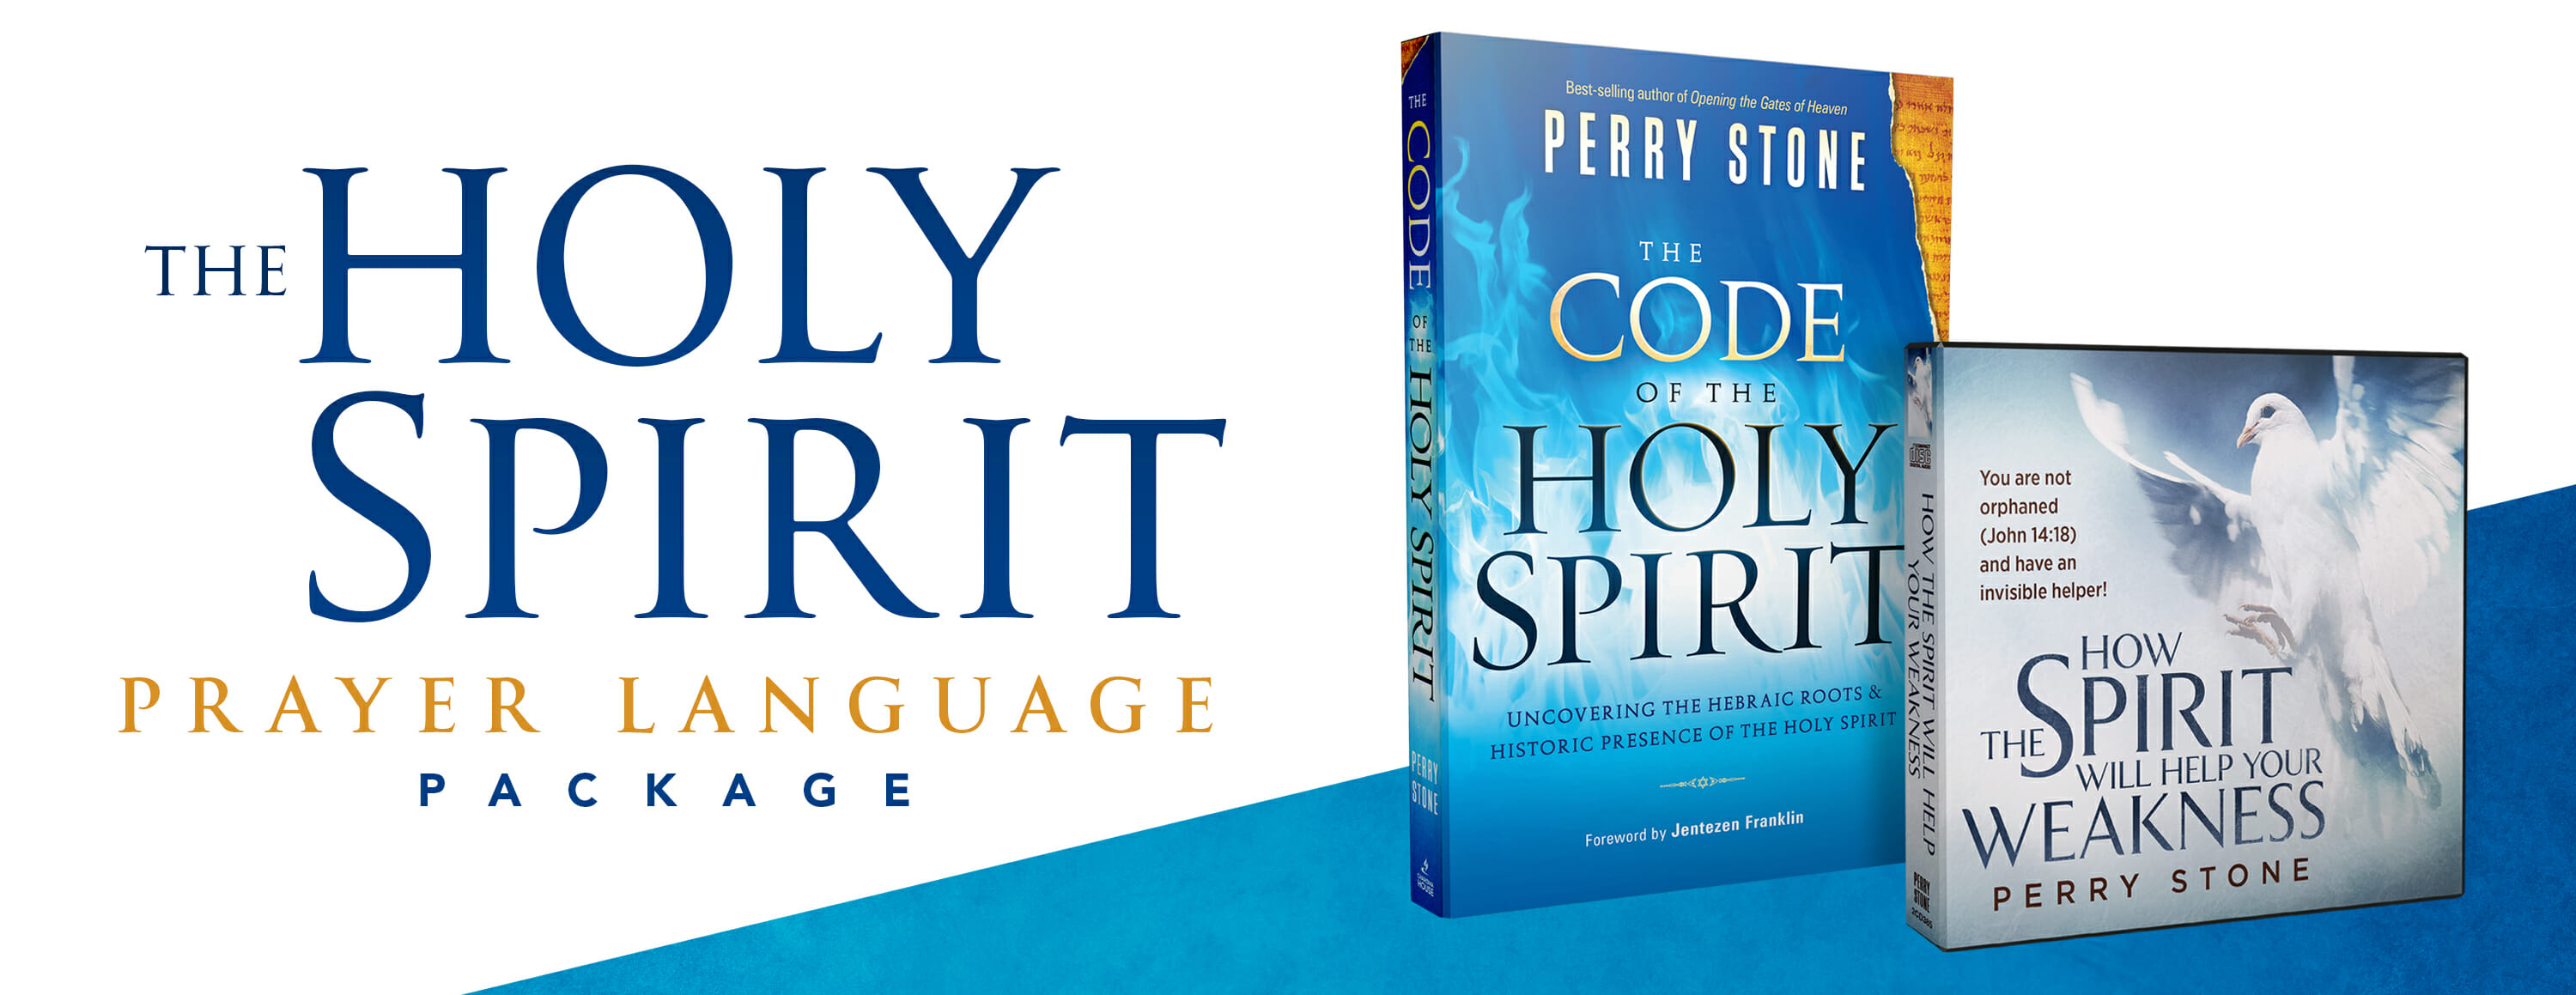 Holy Spirit Prayer Language Pkg